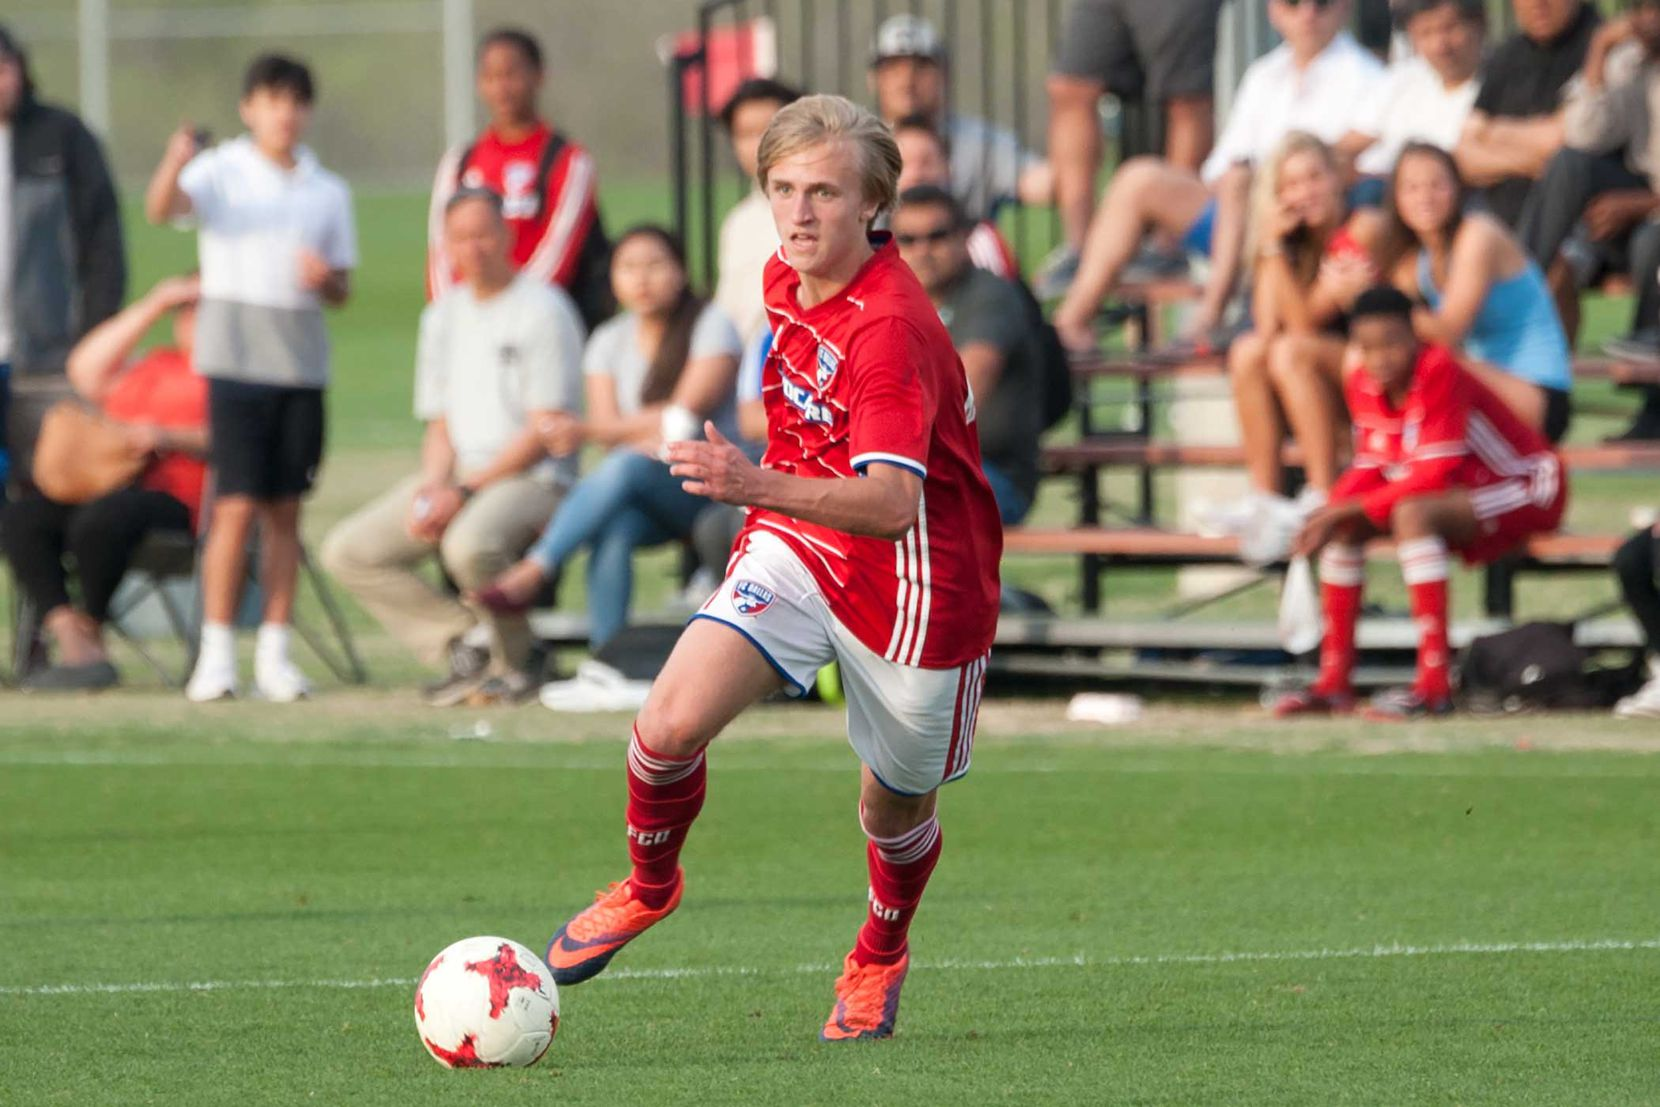 Thomas Roberts playing for the FC Dallas U19s in the 2018 Dallas Cup.